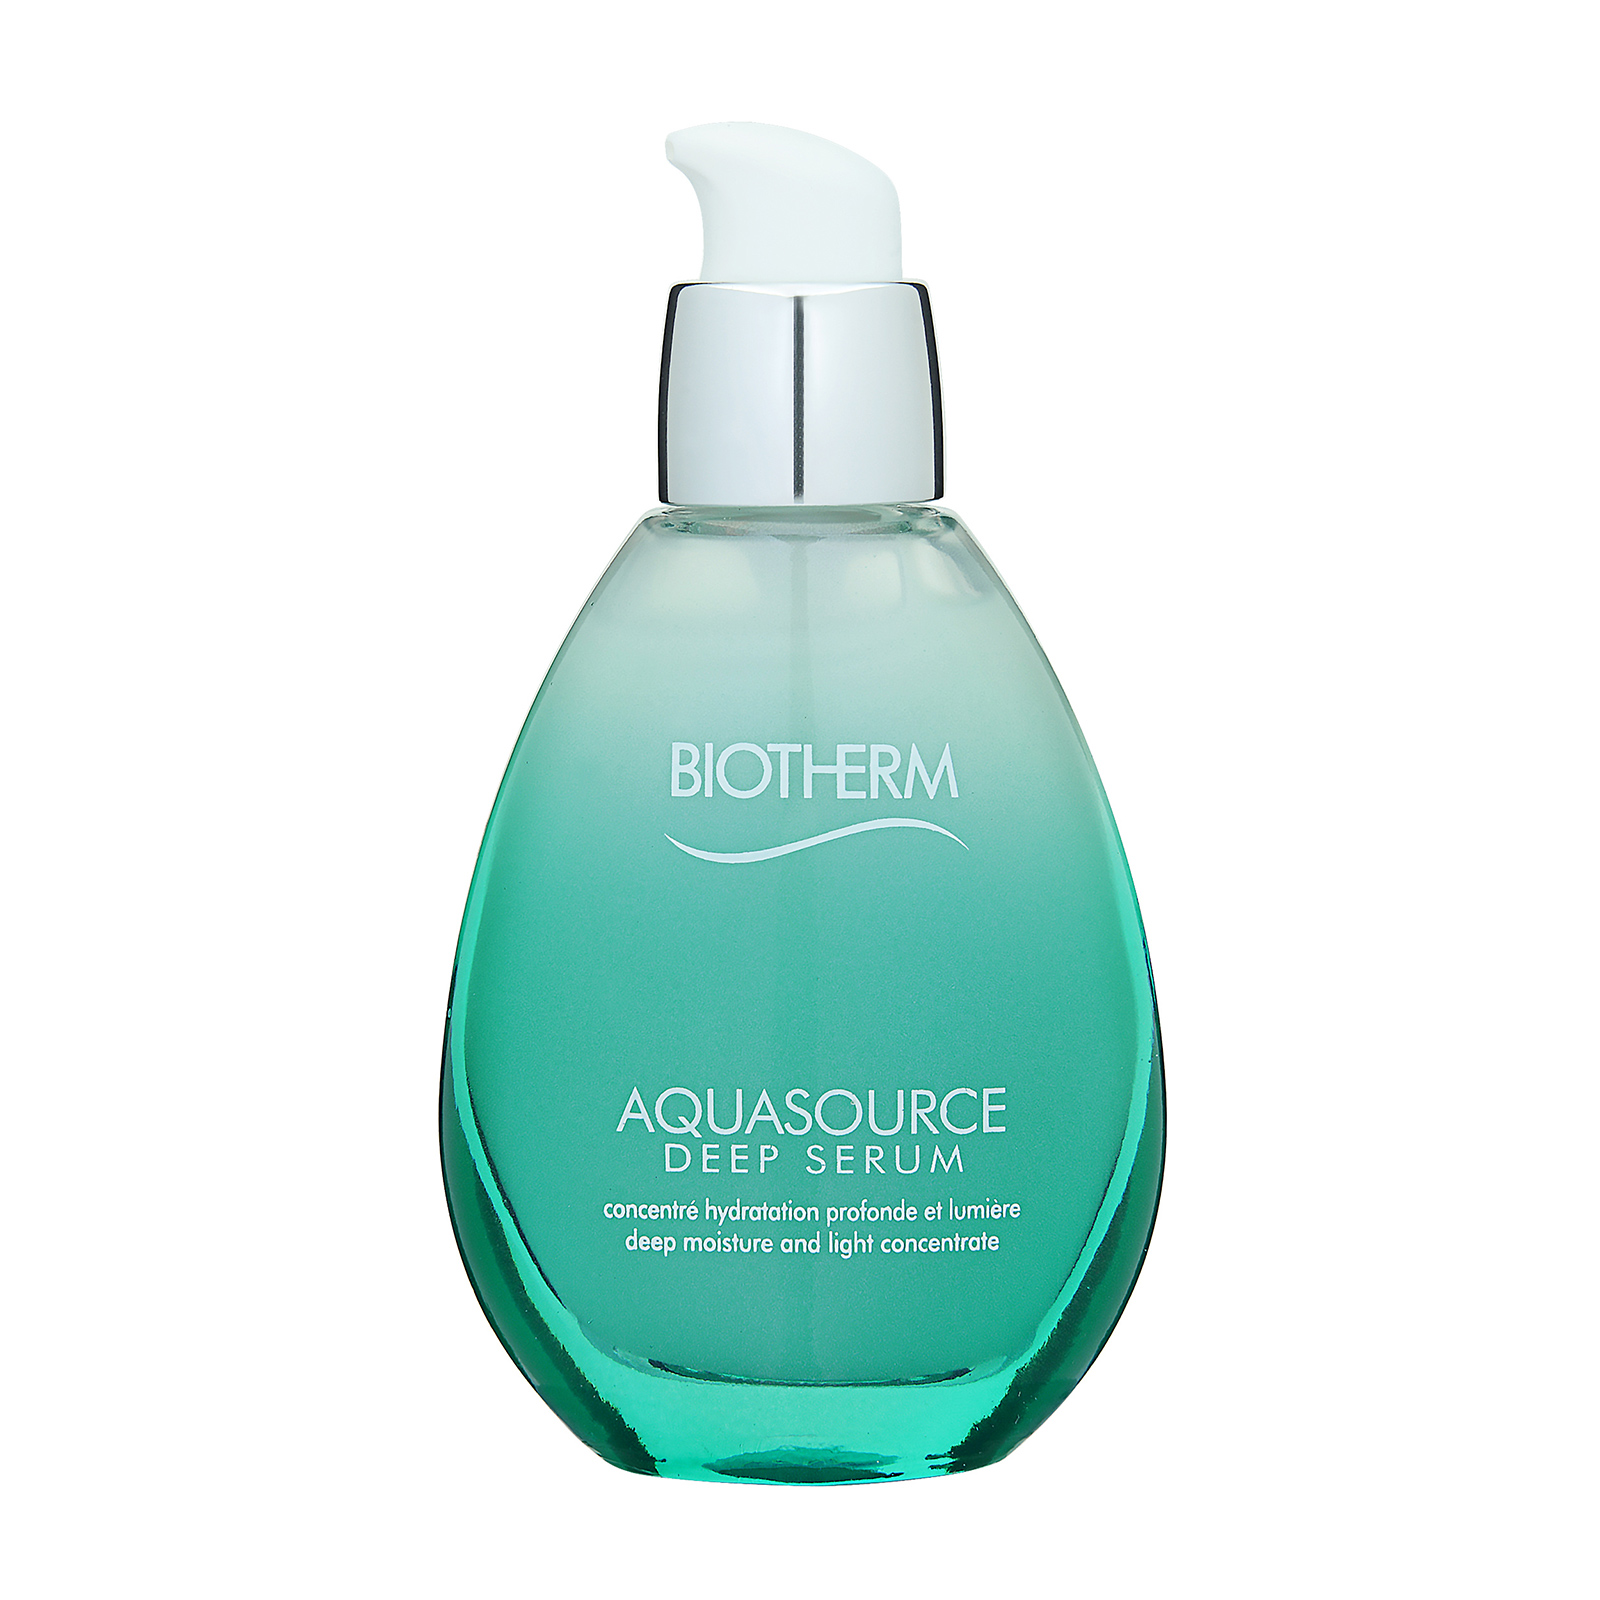 Biotherm Aquasource Deep Serum (All Skin Types) 1.69oz, 50ml from Cosme-De.com